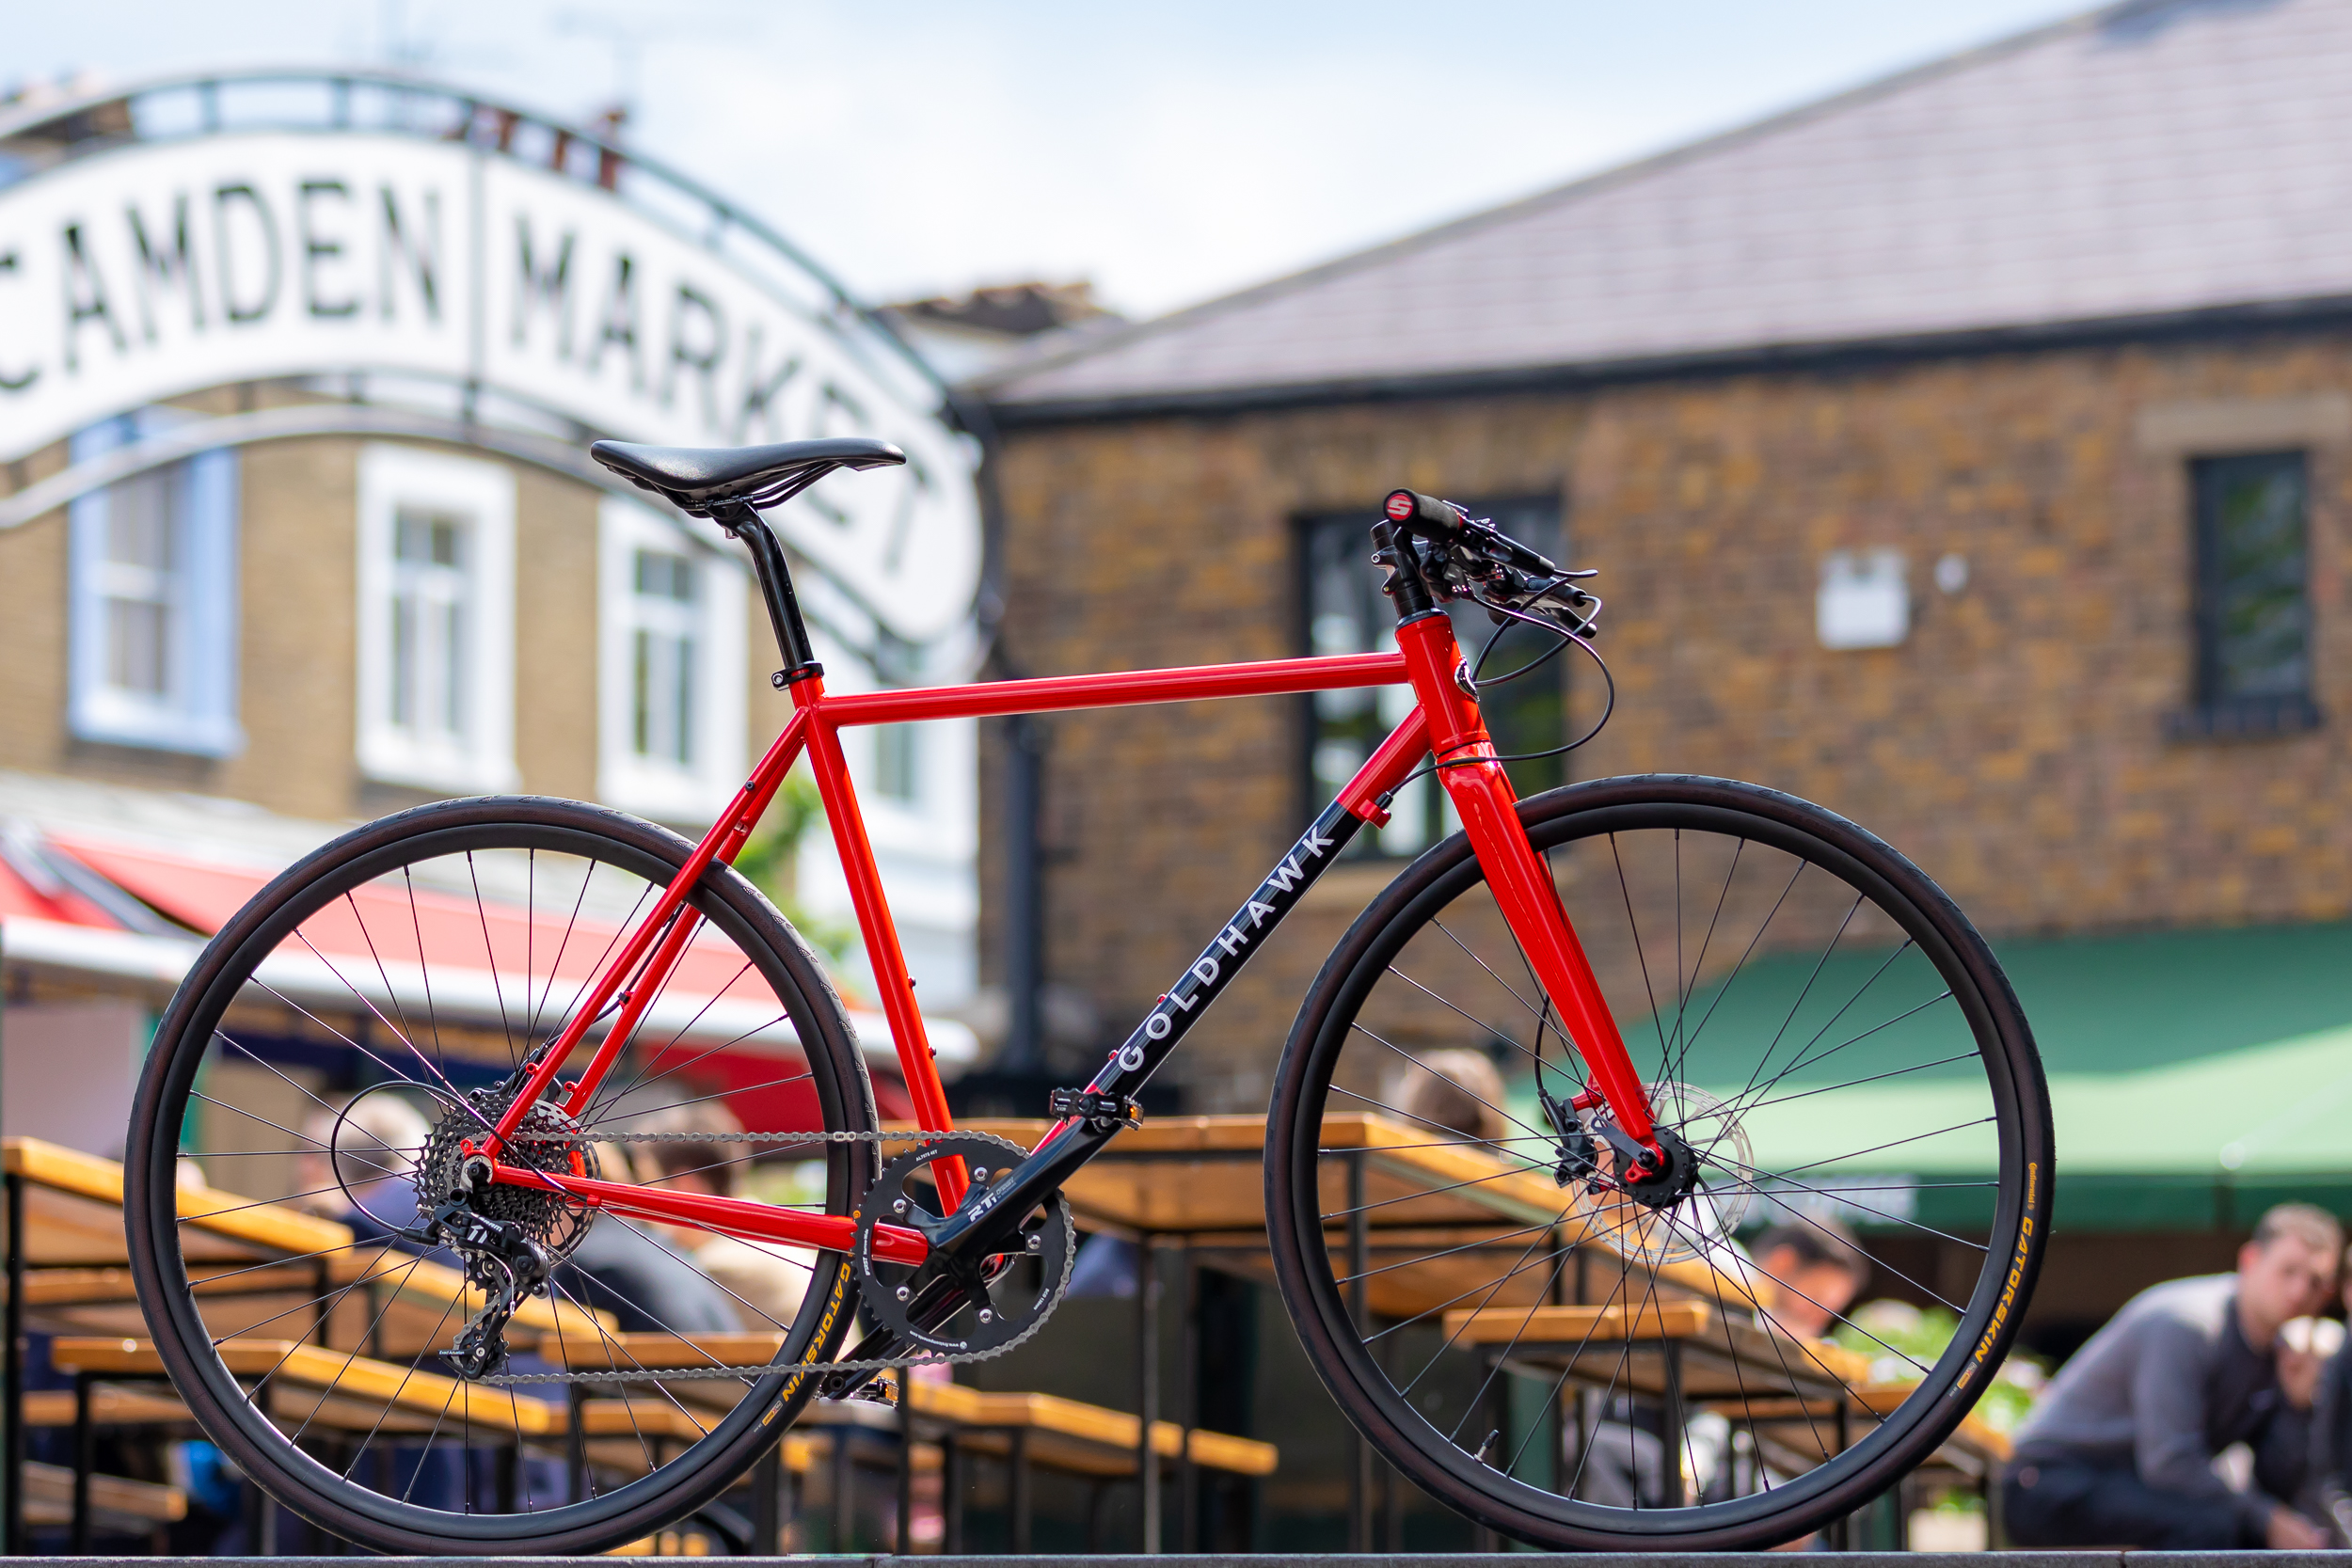 The ultimate flat bar urban bike. Custom Steel Frame designed and built in the UK